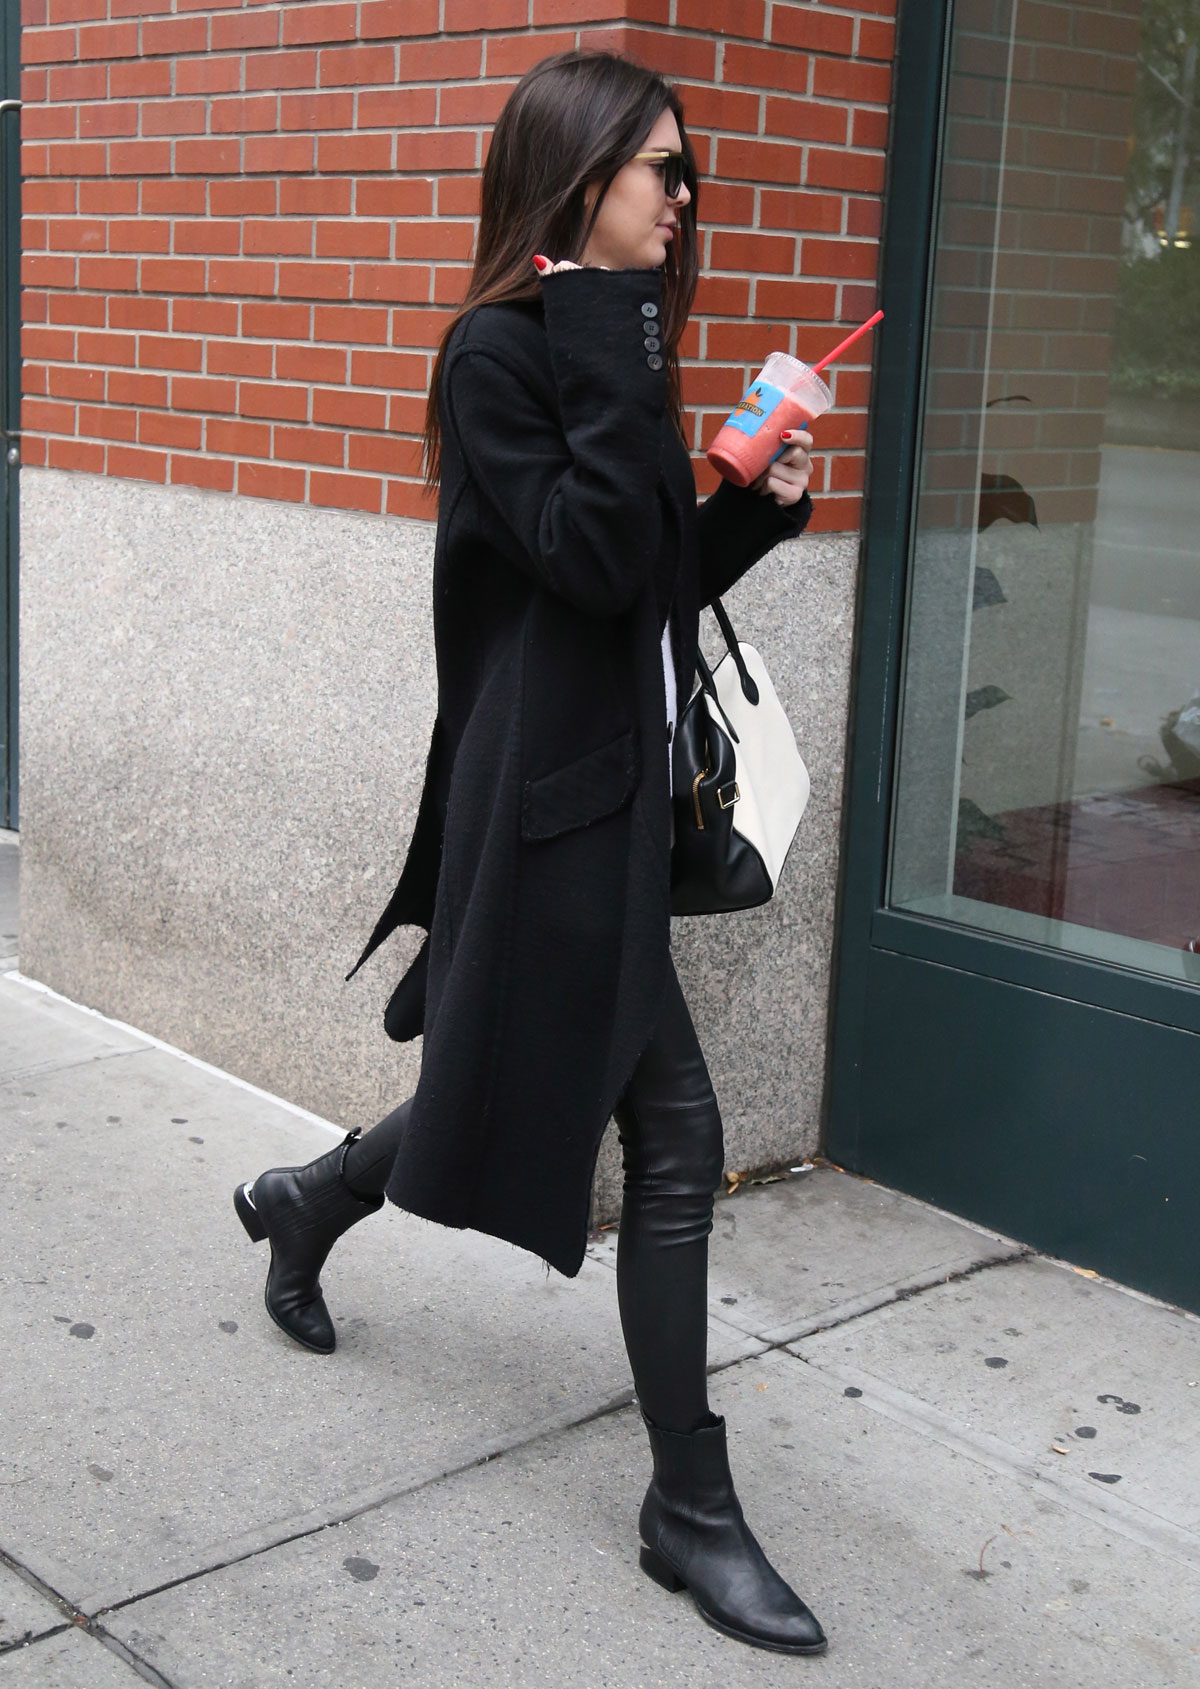 Kendall Jenner out in NYC